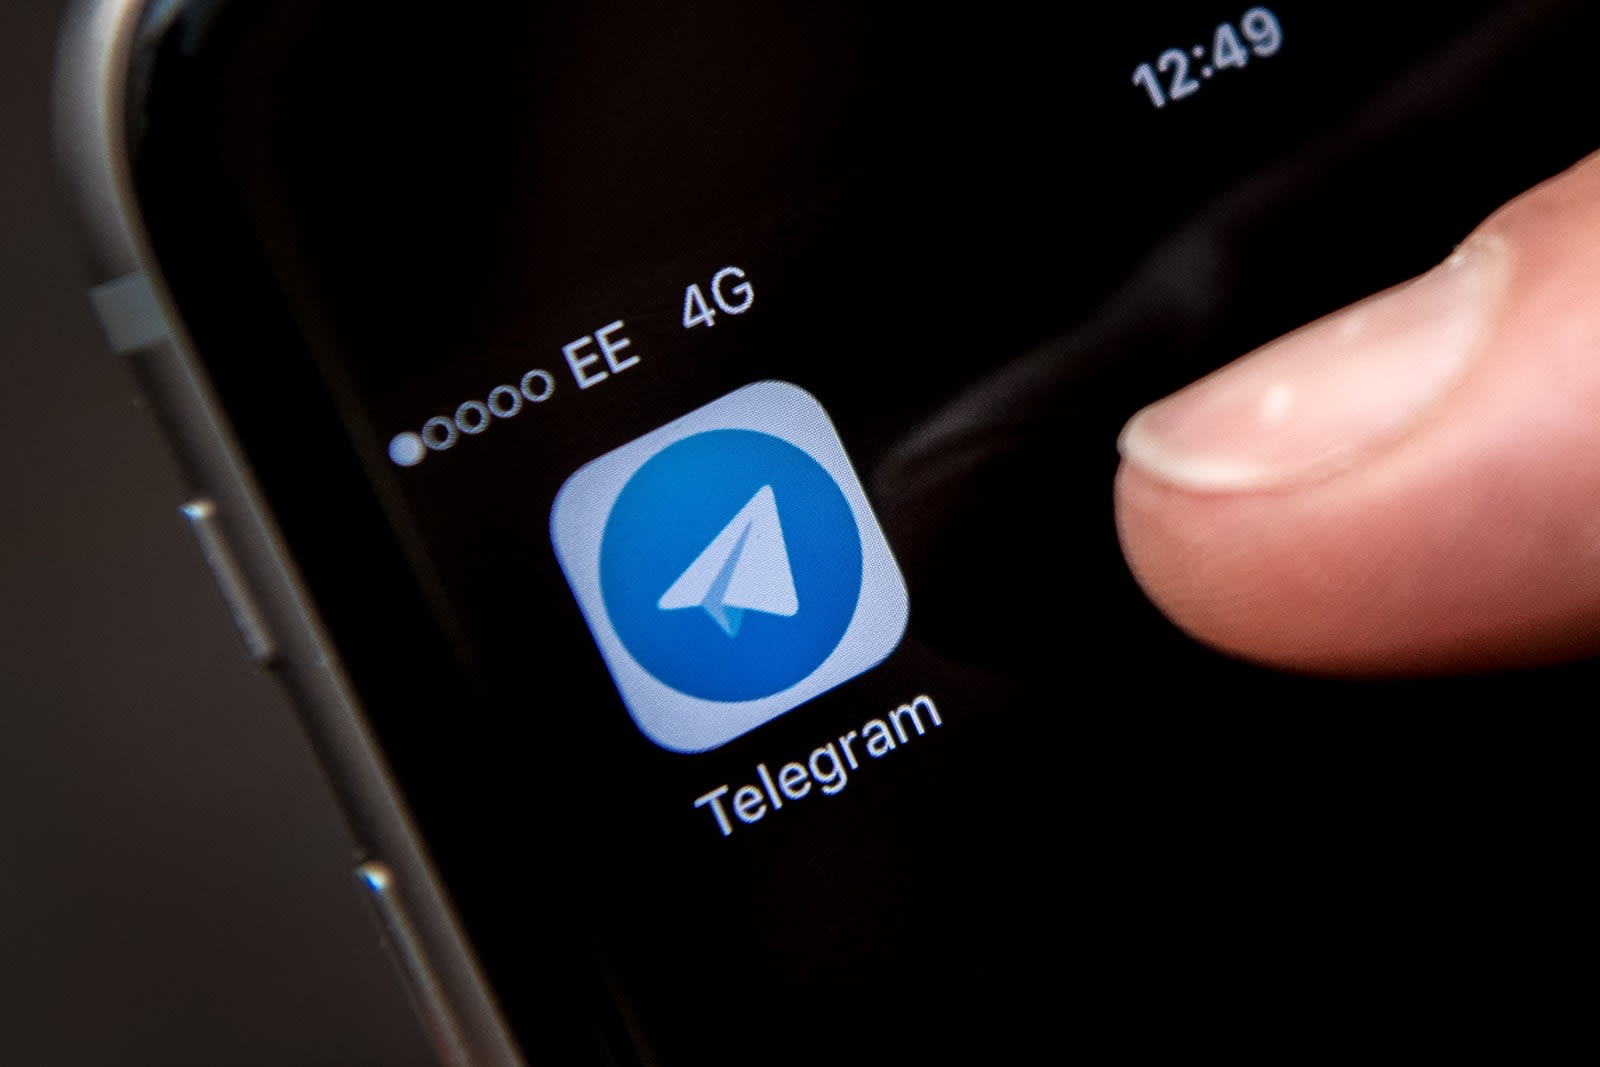 Apple removes Telegram from App Store due to inappropriate content (updated)